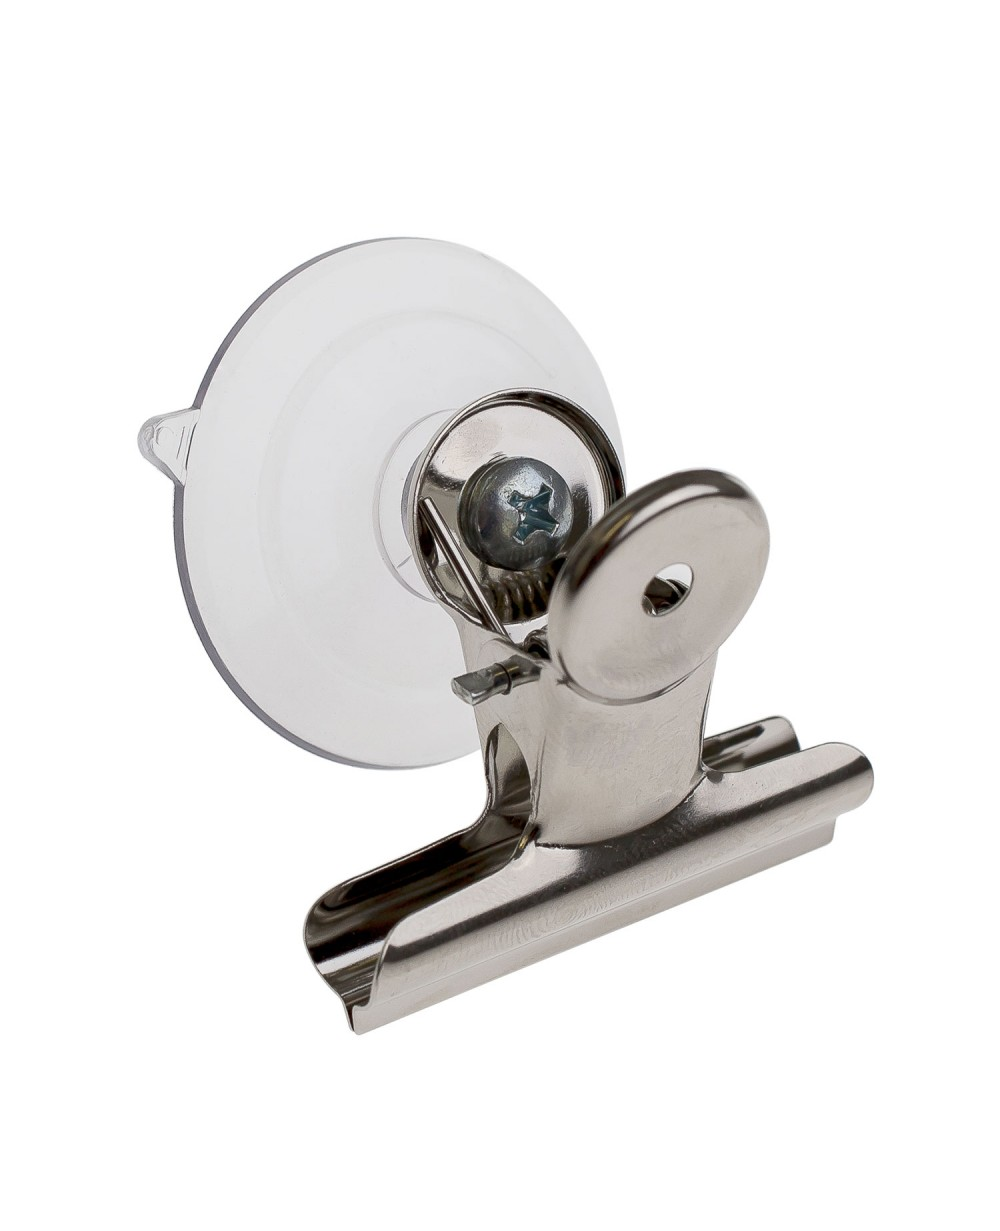 metal clips with suction cup